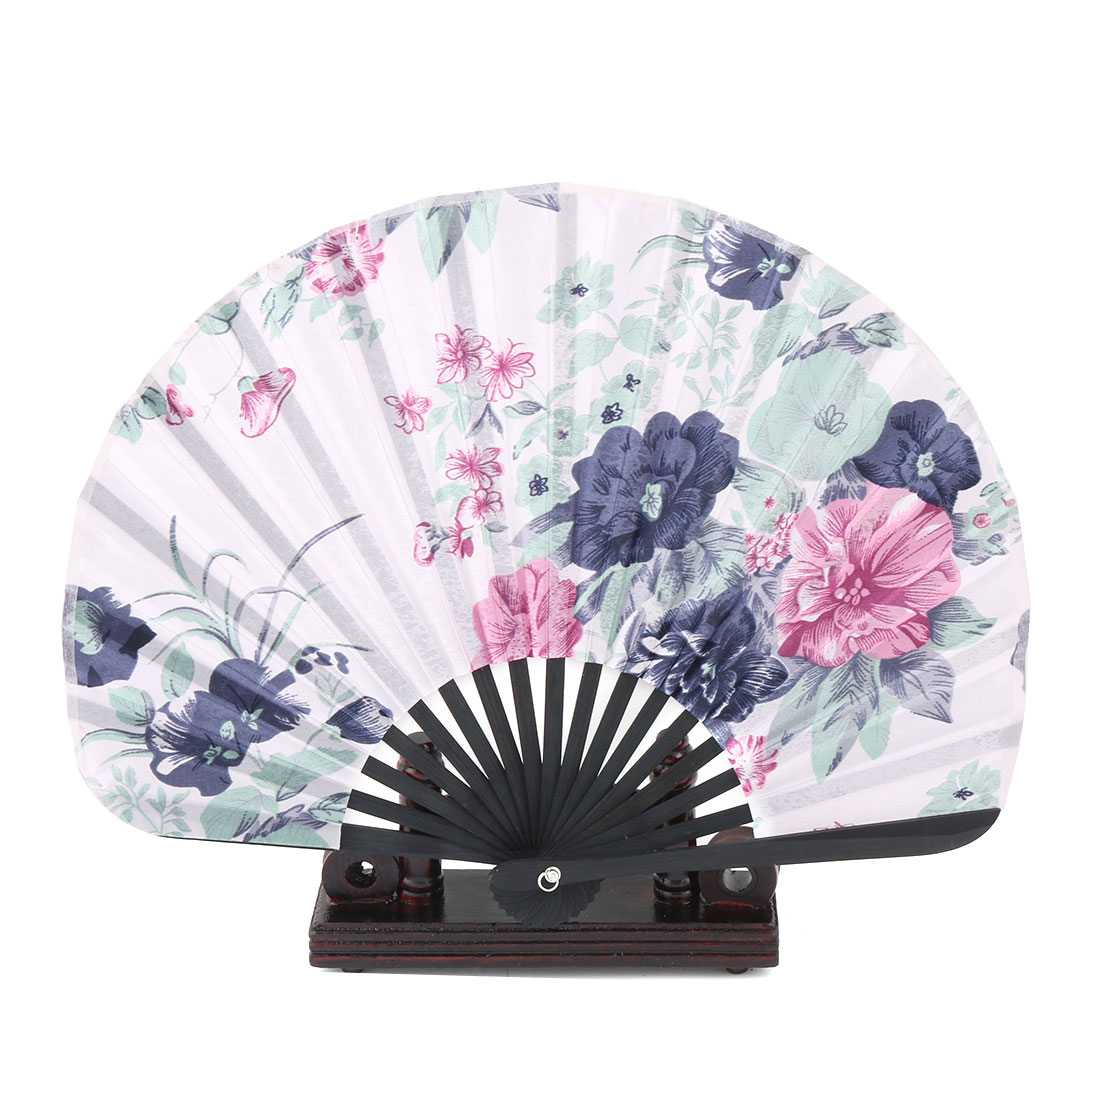 Home Bamboo Flower Print Chinese Style Hand Fan Display Holder Navy Blue 2 in 1